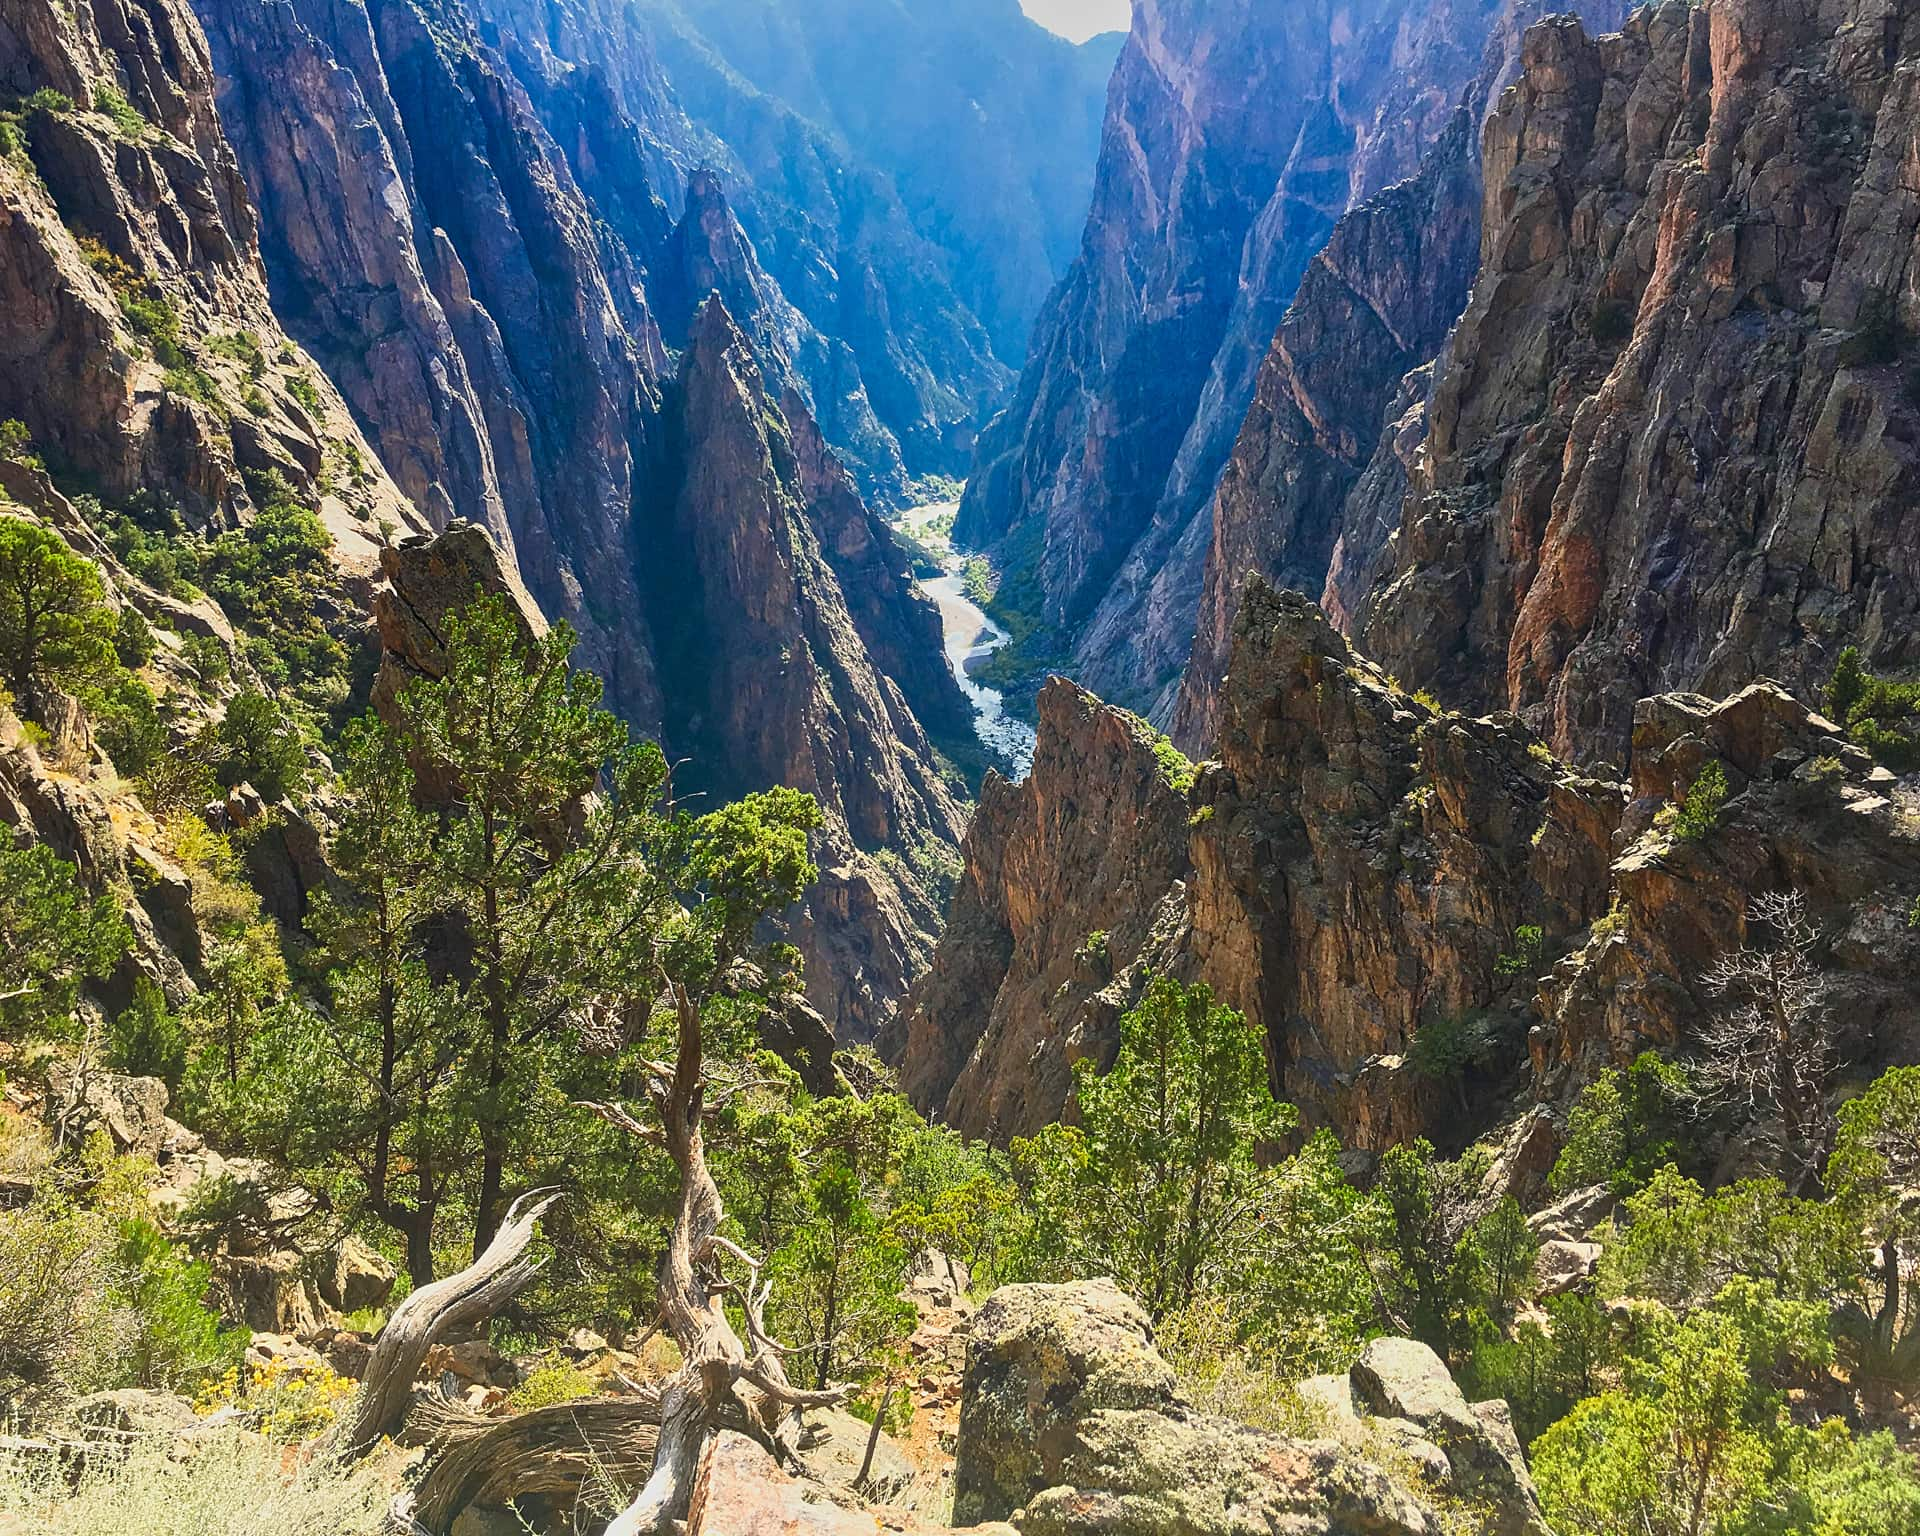 Looking Back Down The Canyon